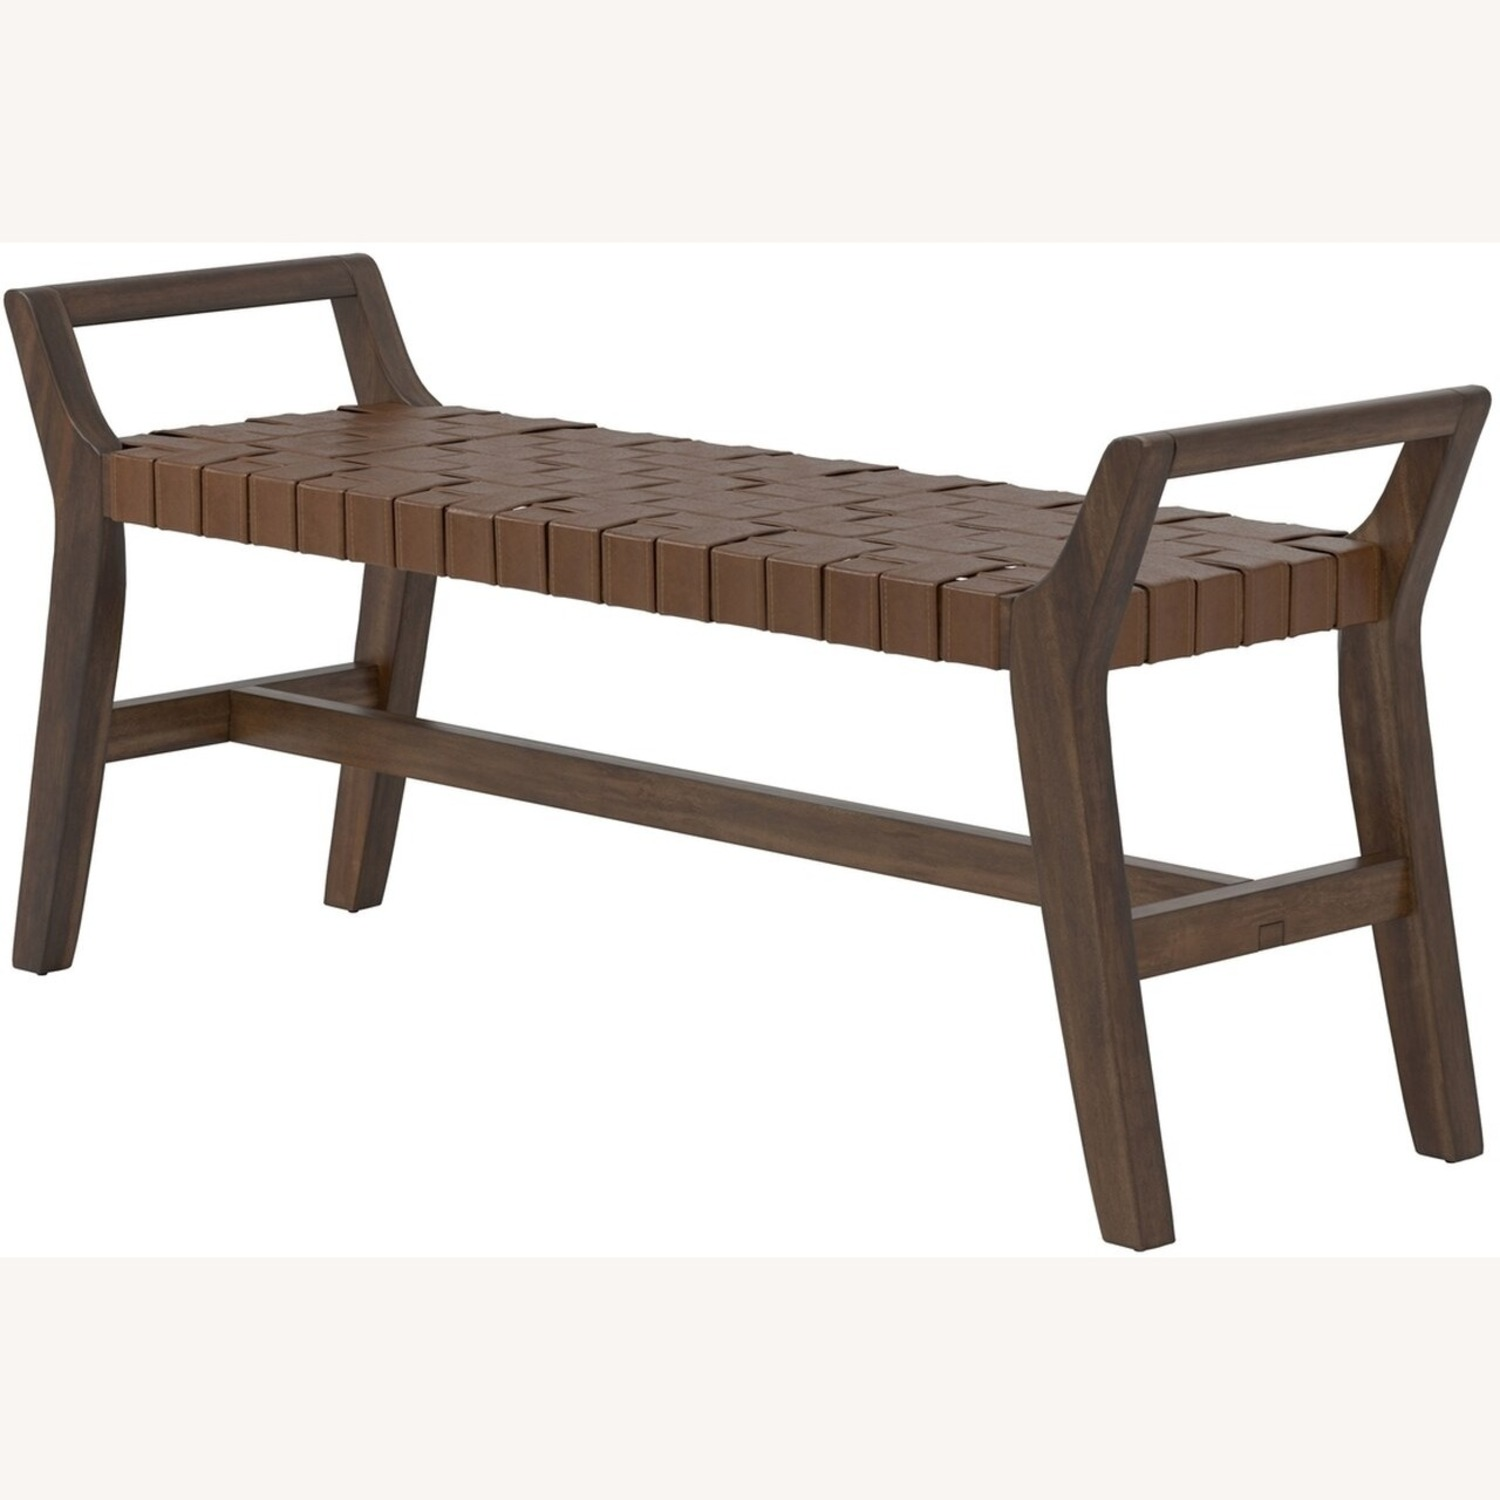 Modern Bench Made W/ Woven Brown Leatherette - image-1